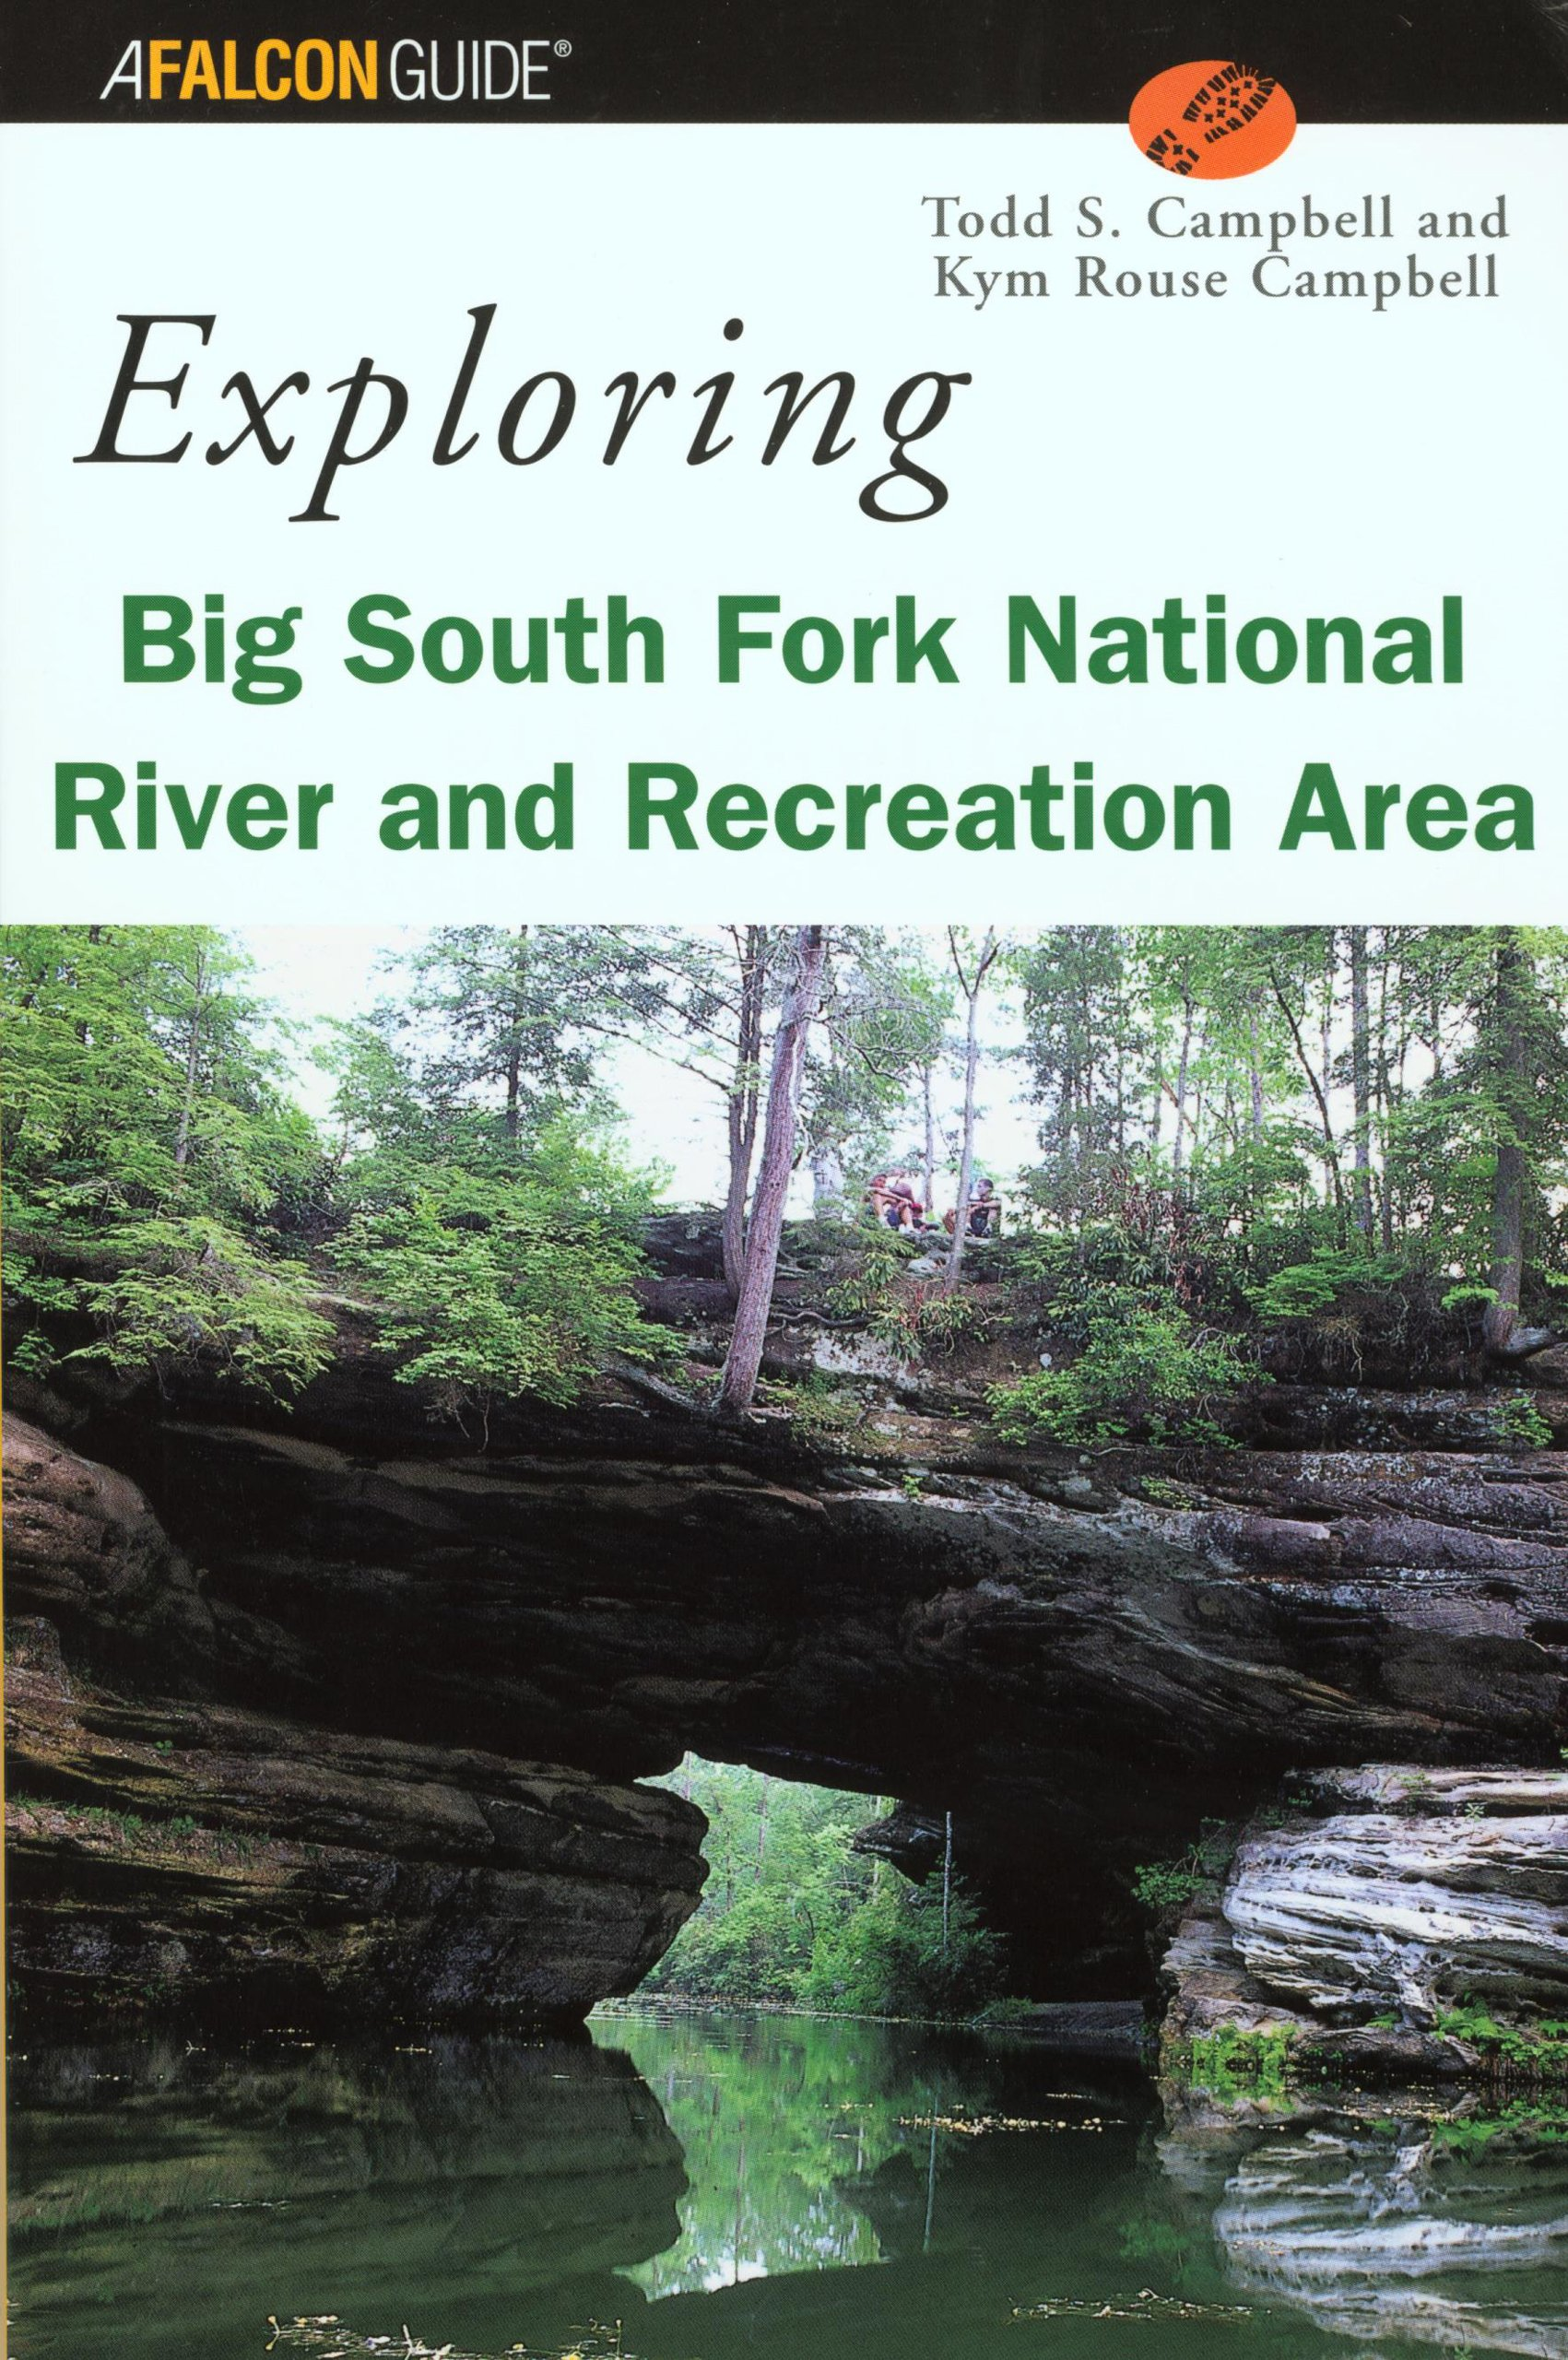 Exploring Big South Fork National River and Recreation Area (Exploring  Series): Todd Campbell, Kym Campbell: 9780762710904: Amazon.com: Books